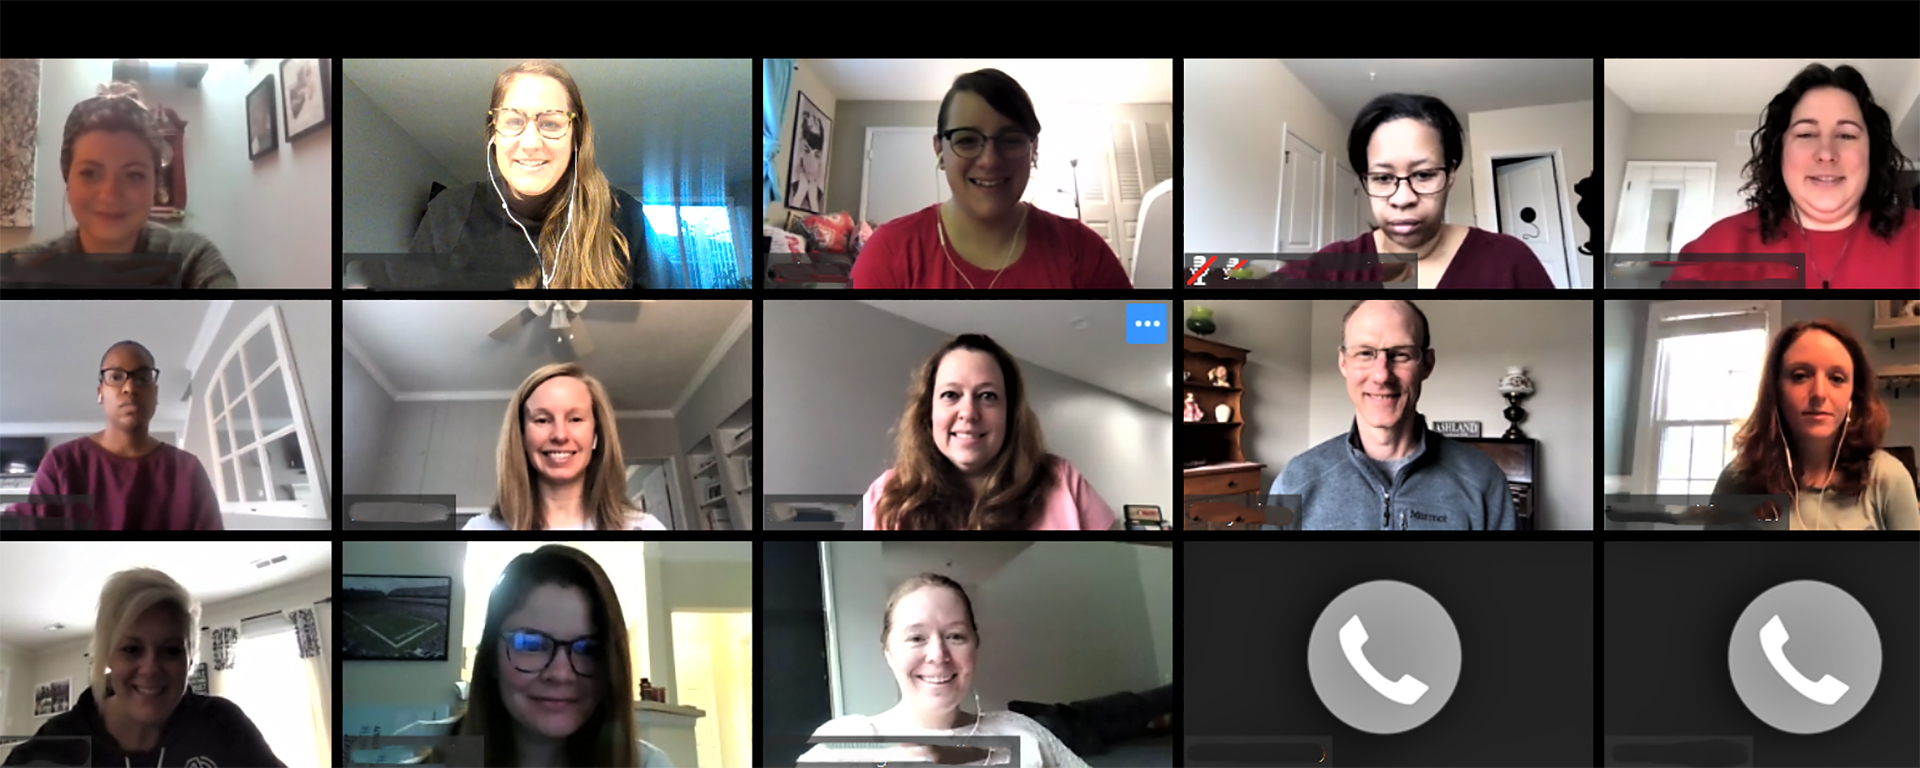 Capital One Talent Marketing team navigates working from home and holding virtual meetings